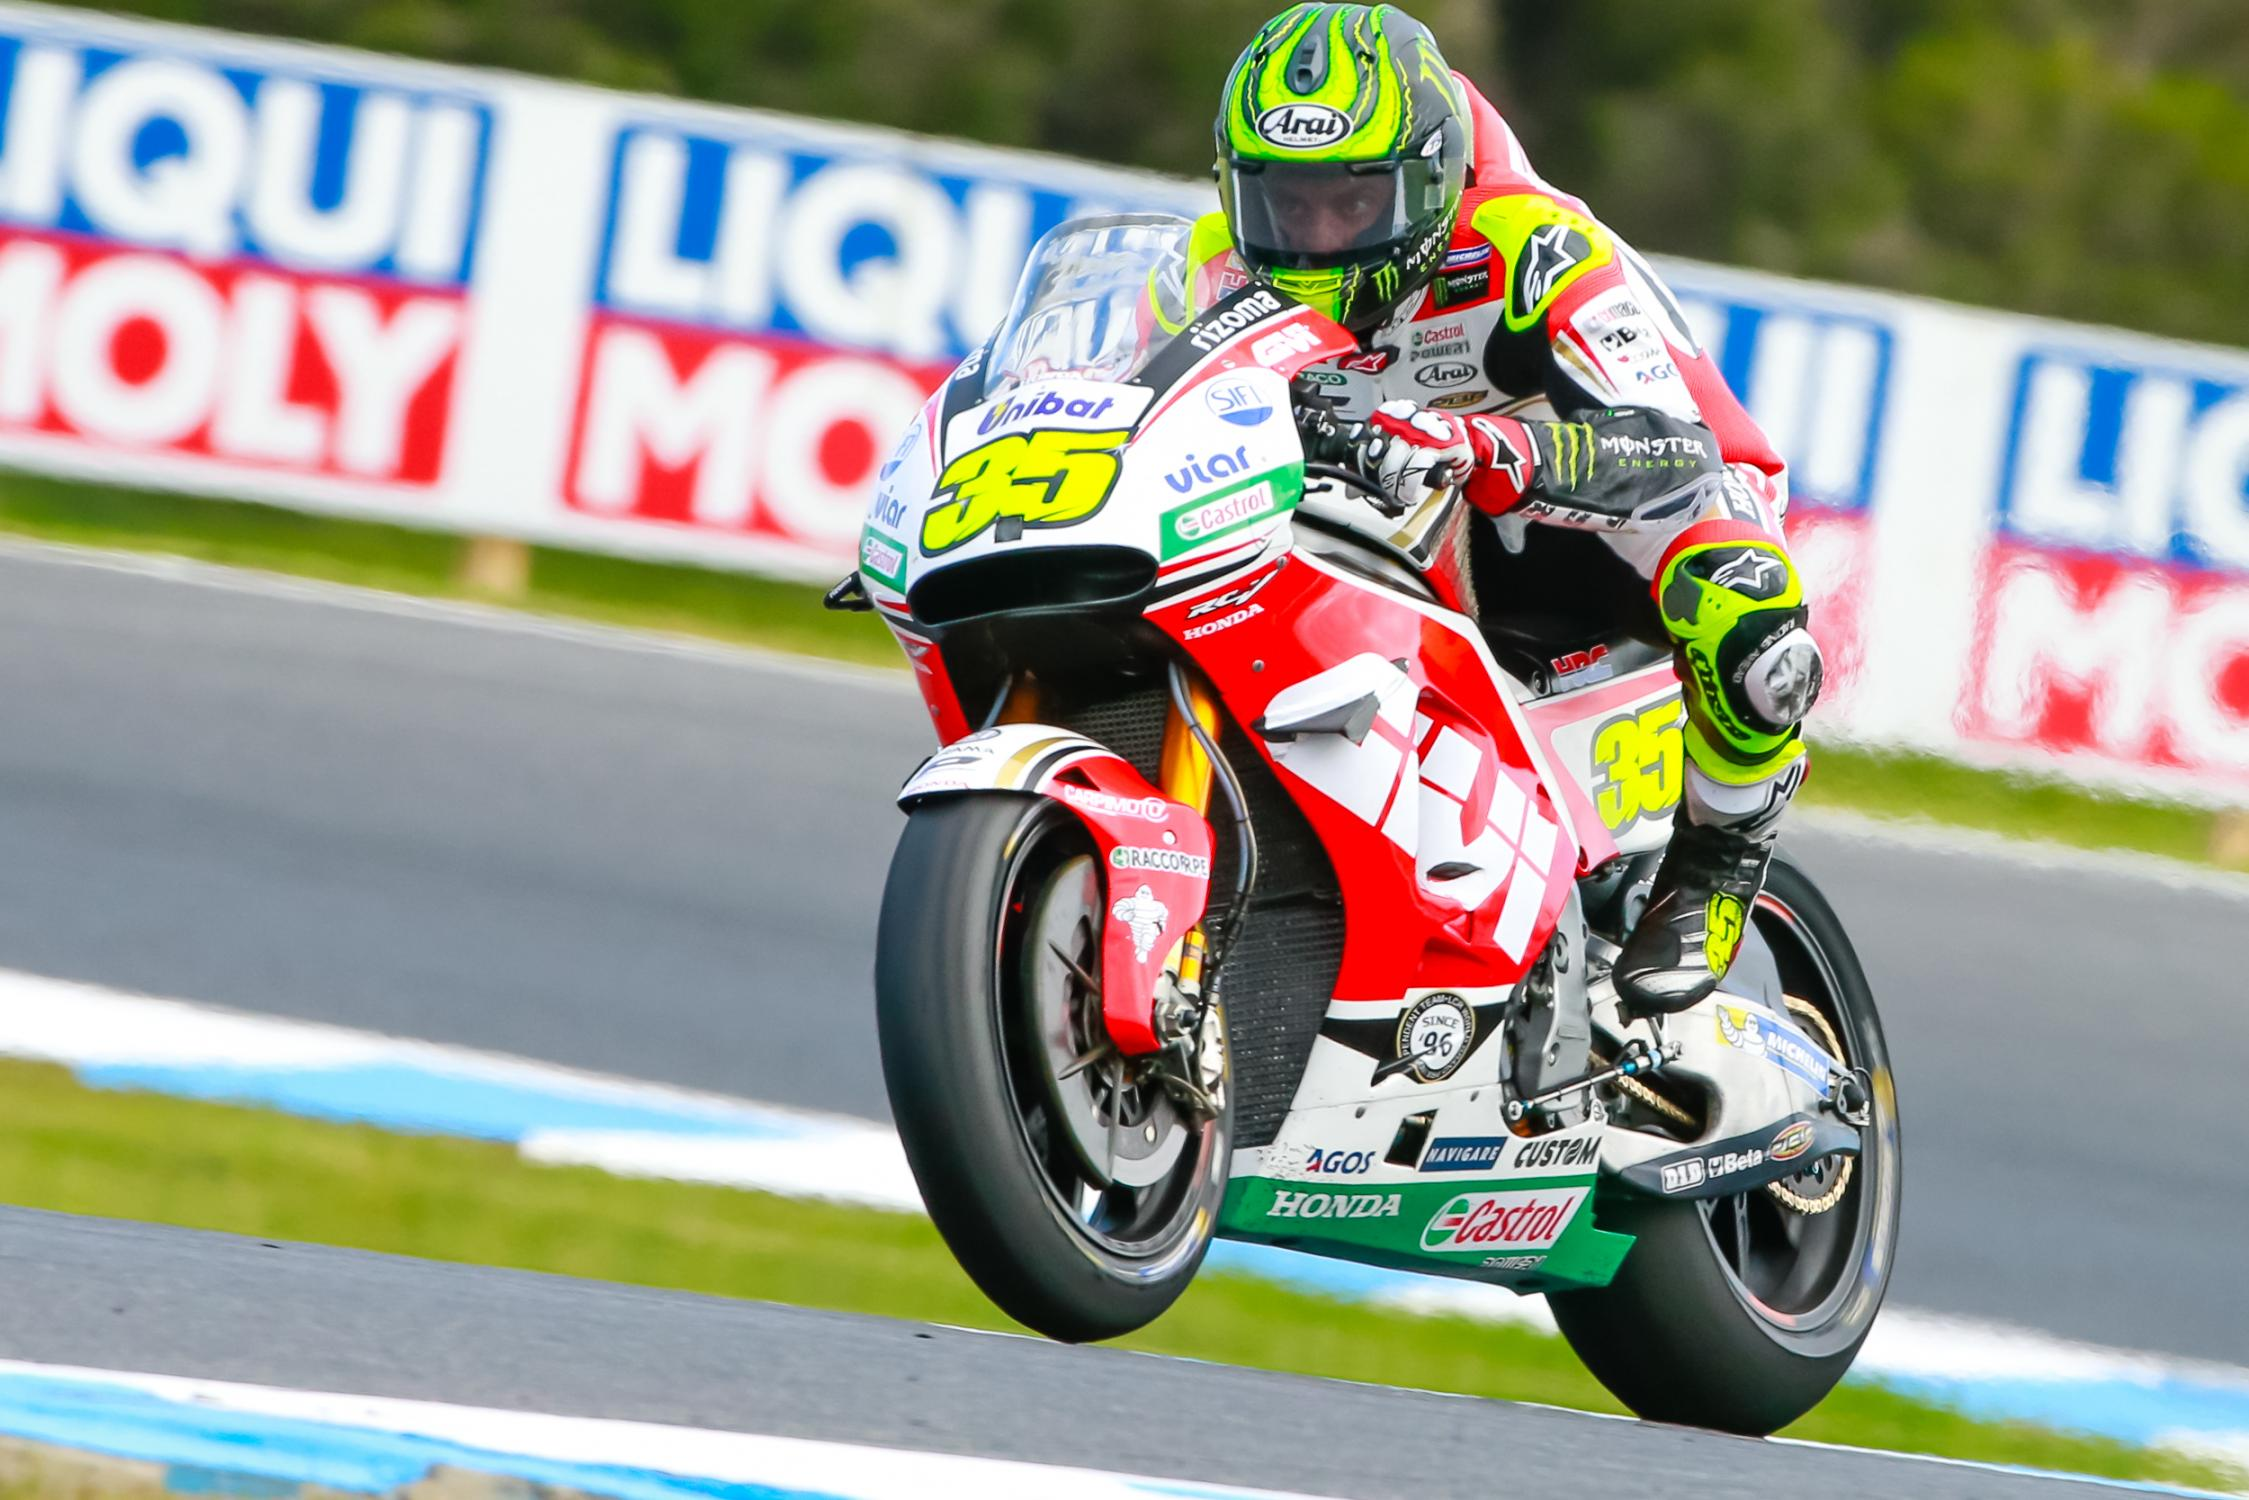 [GP] Philip Island 35-cal-crutchlow-eng_gp_3166.gallery_full_top_fullscreen